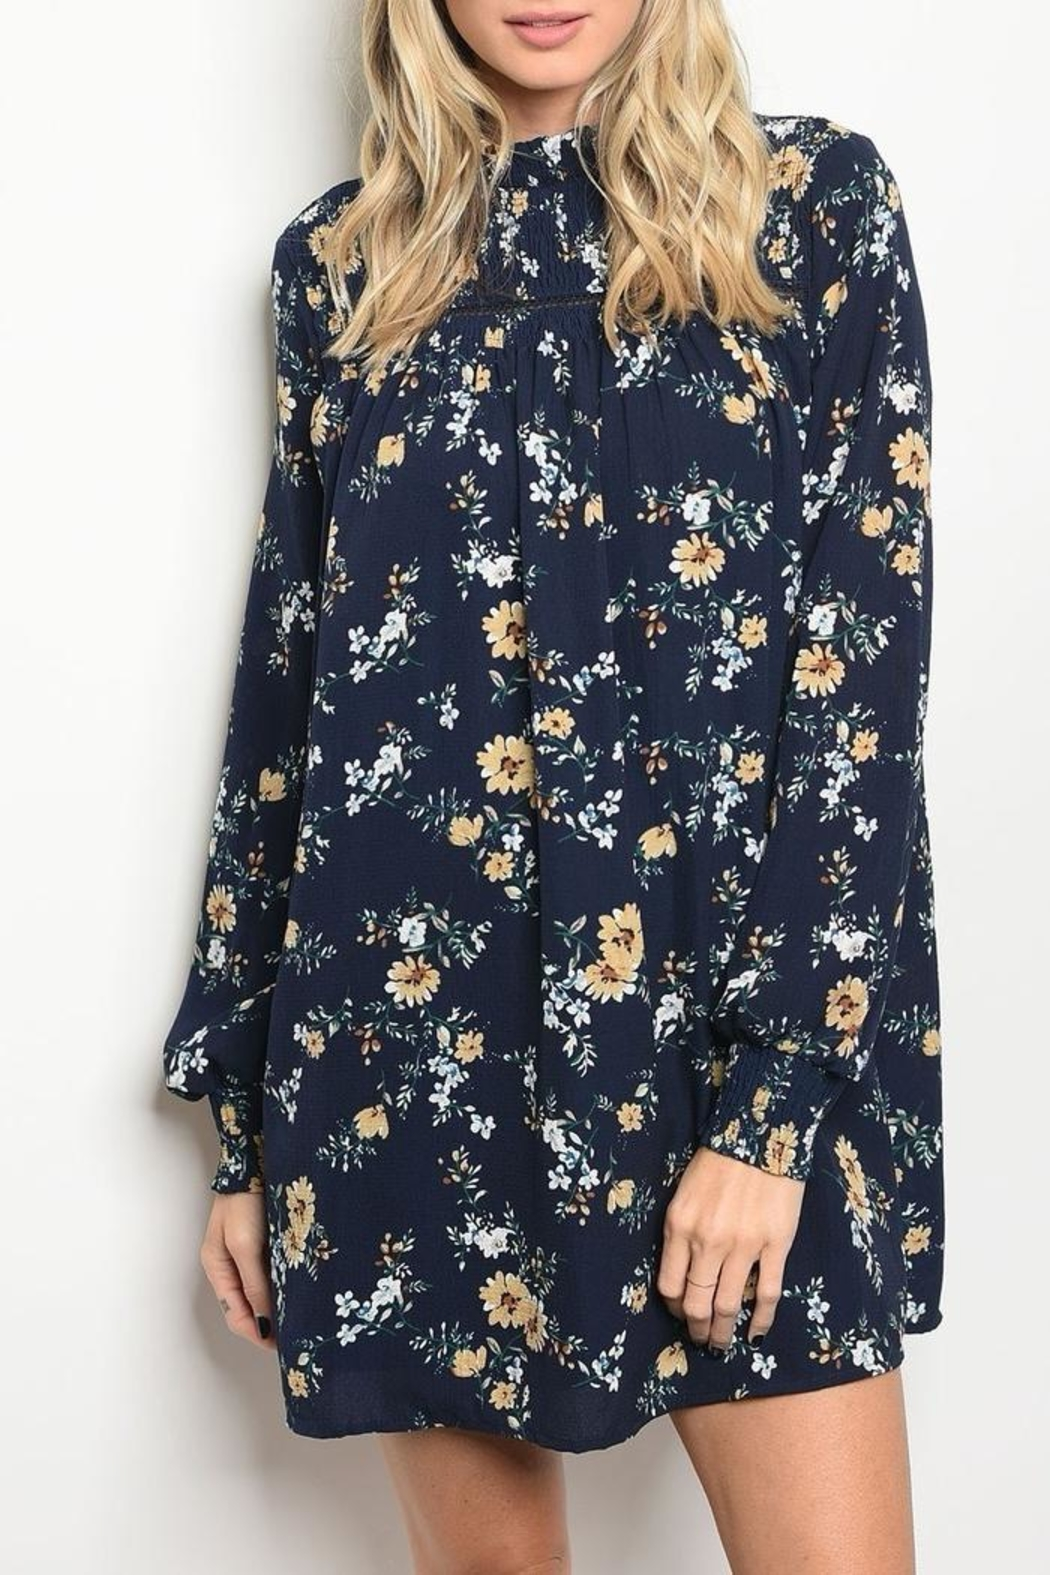 LoveRiche Floral Navy Dress - Main Image